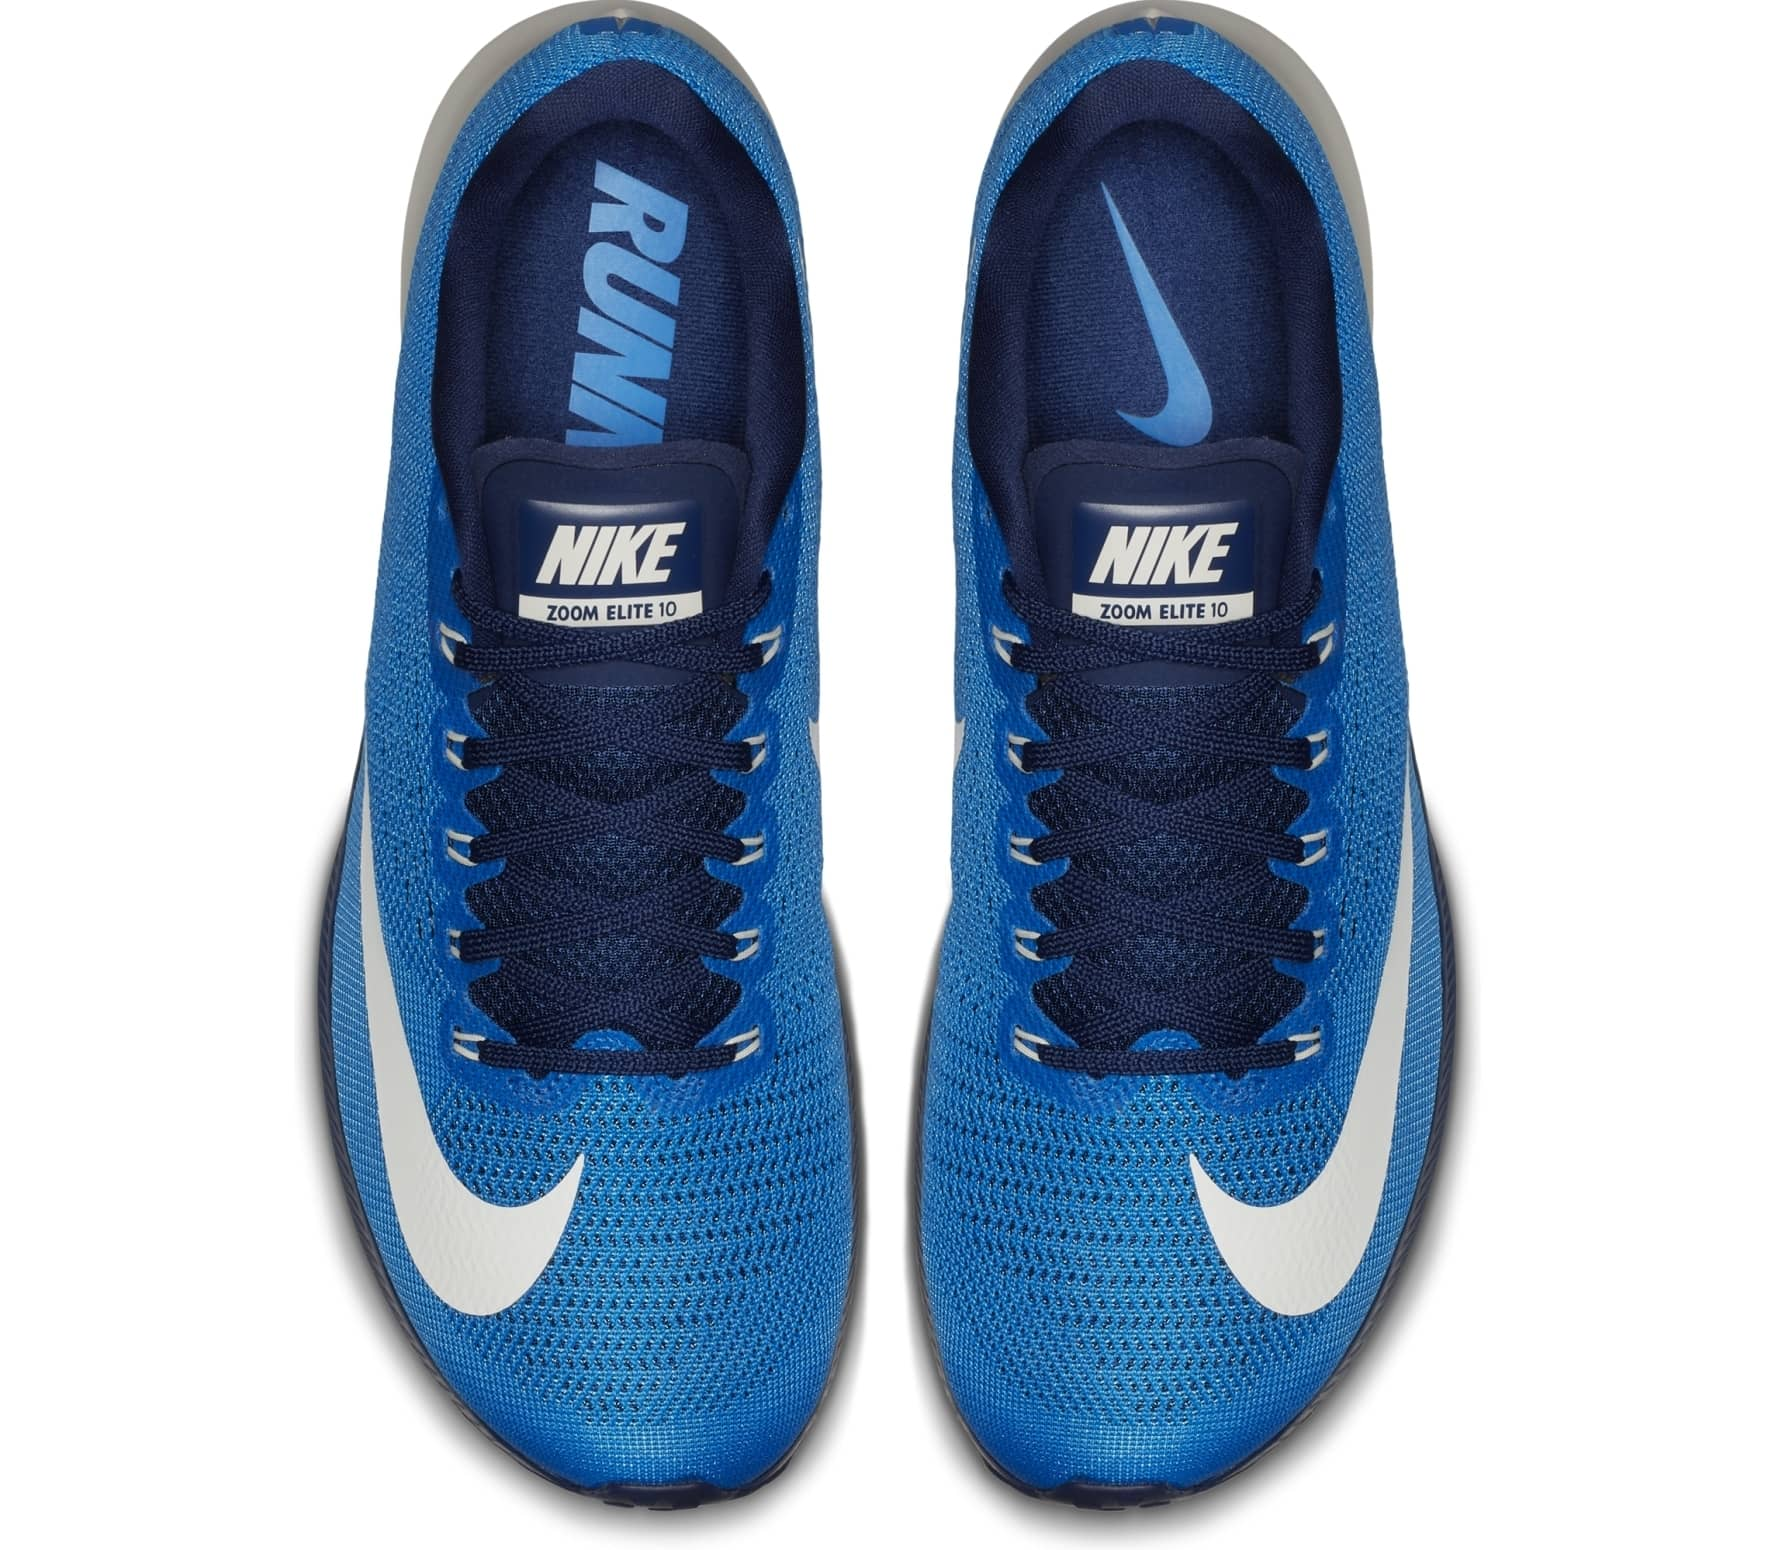 d182fc11500 Nike - Air Zoom Elite 10 men s running shoes (blue) - buy it at the ...